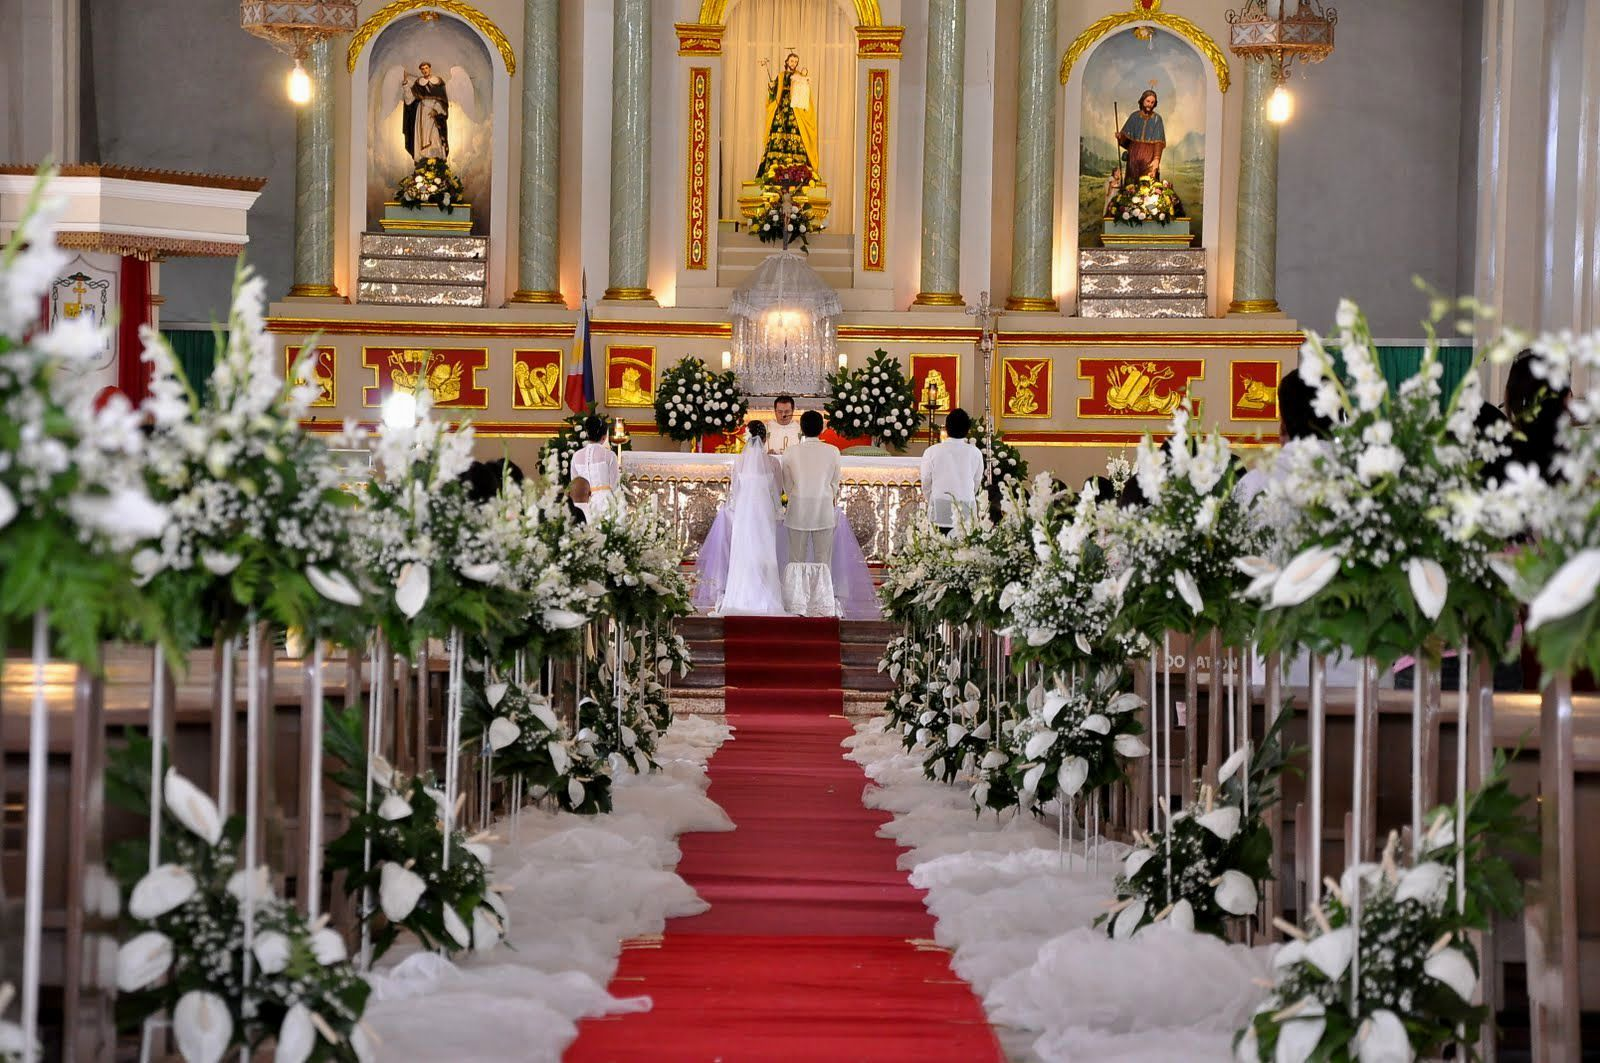 wedding church flowers altar decorations image result for catholic church wedding decorations 8959